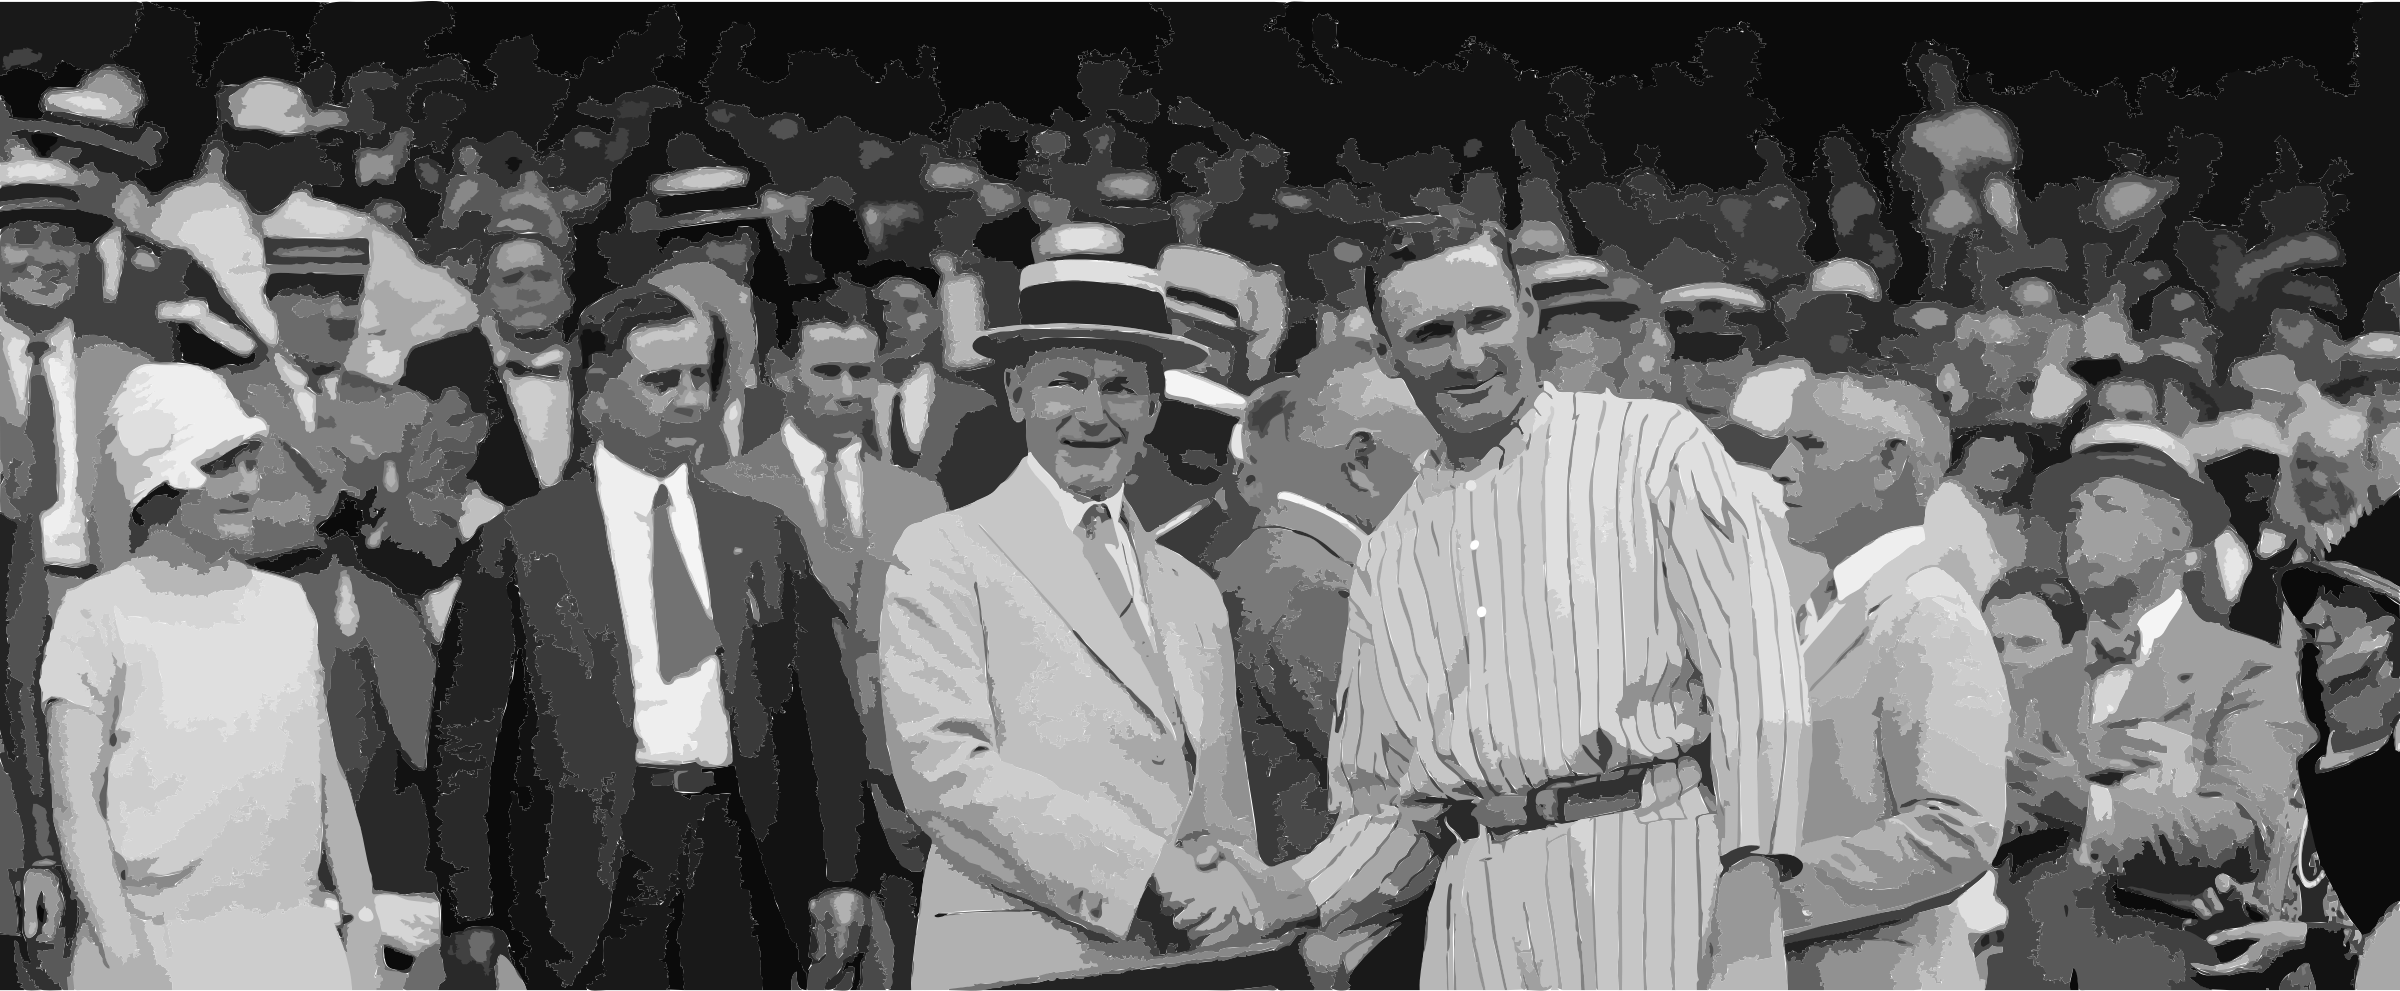 Walter Johnson and Calvin Coolidge shake hands FINAL by 5nbz3a+45jqtl07aorc